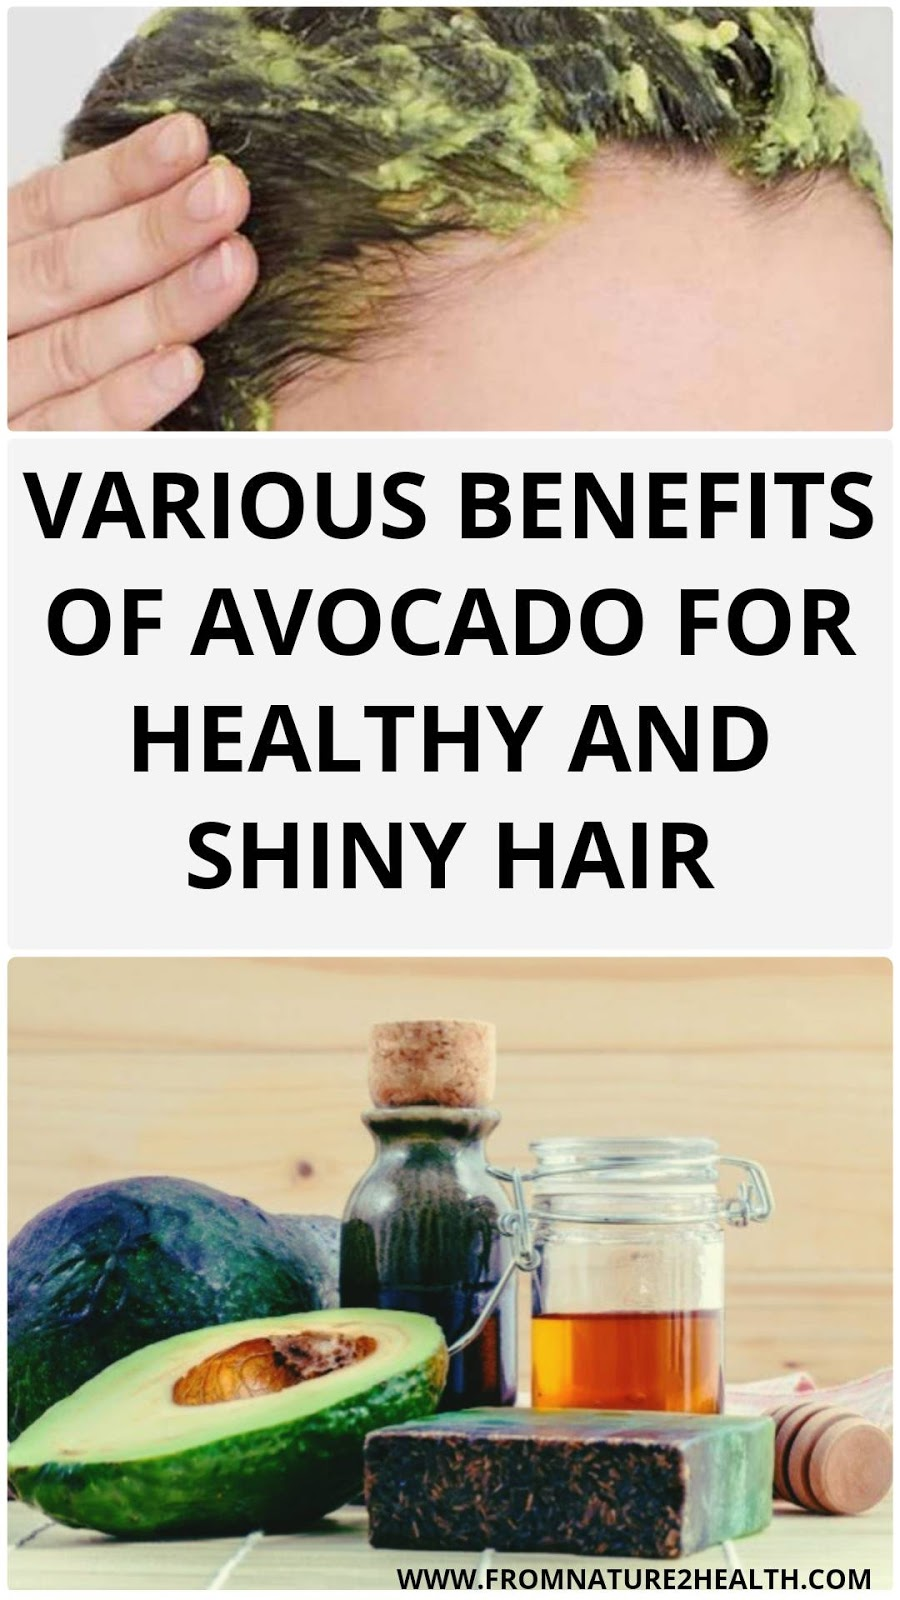 Various Benefits of Avocado for Healthy and Shiny Hair